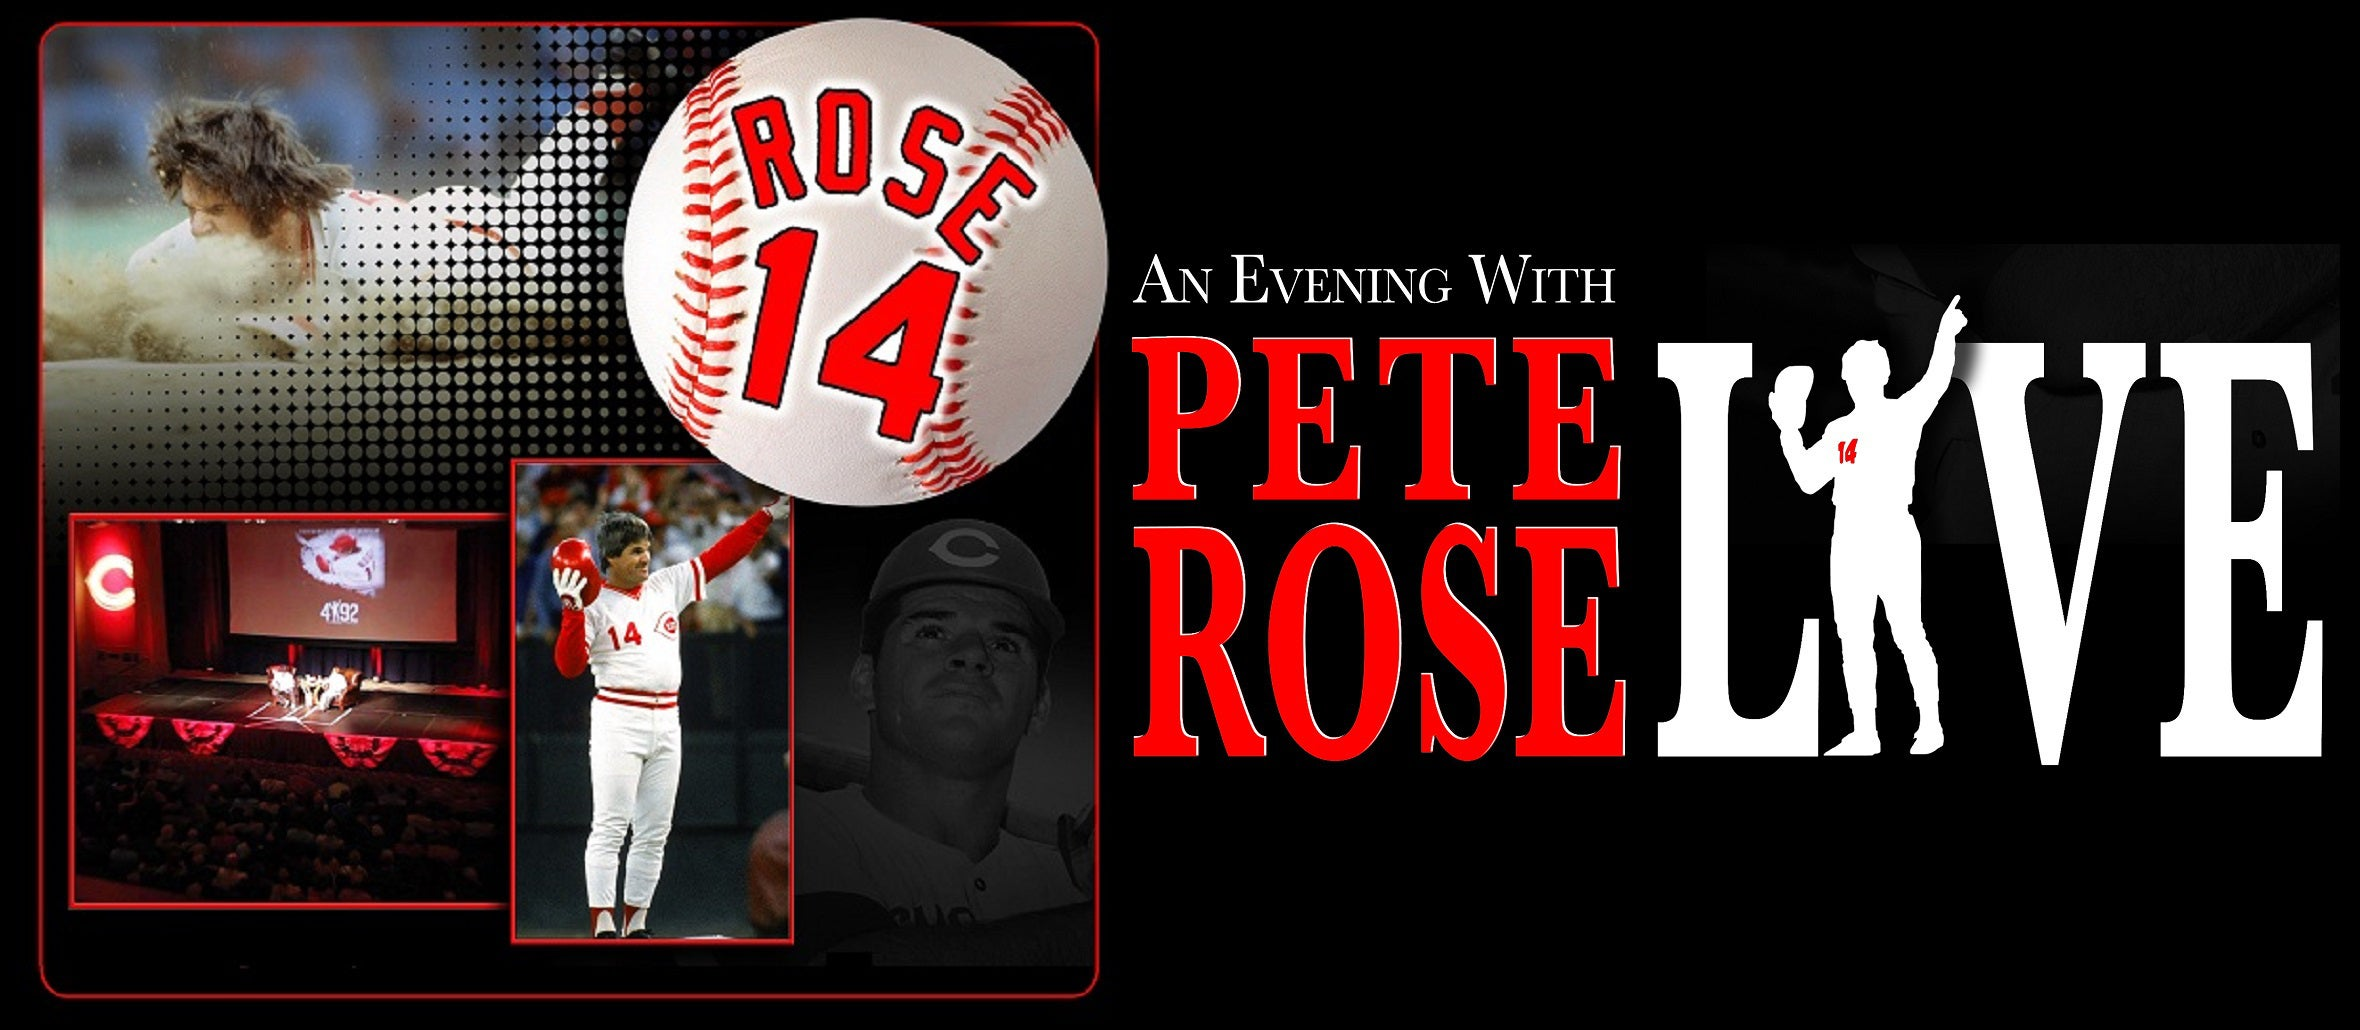 4192: An Evening With Pete Rose Live